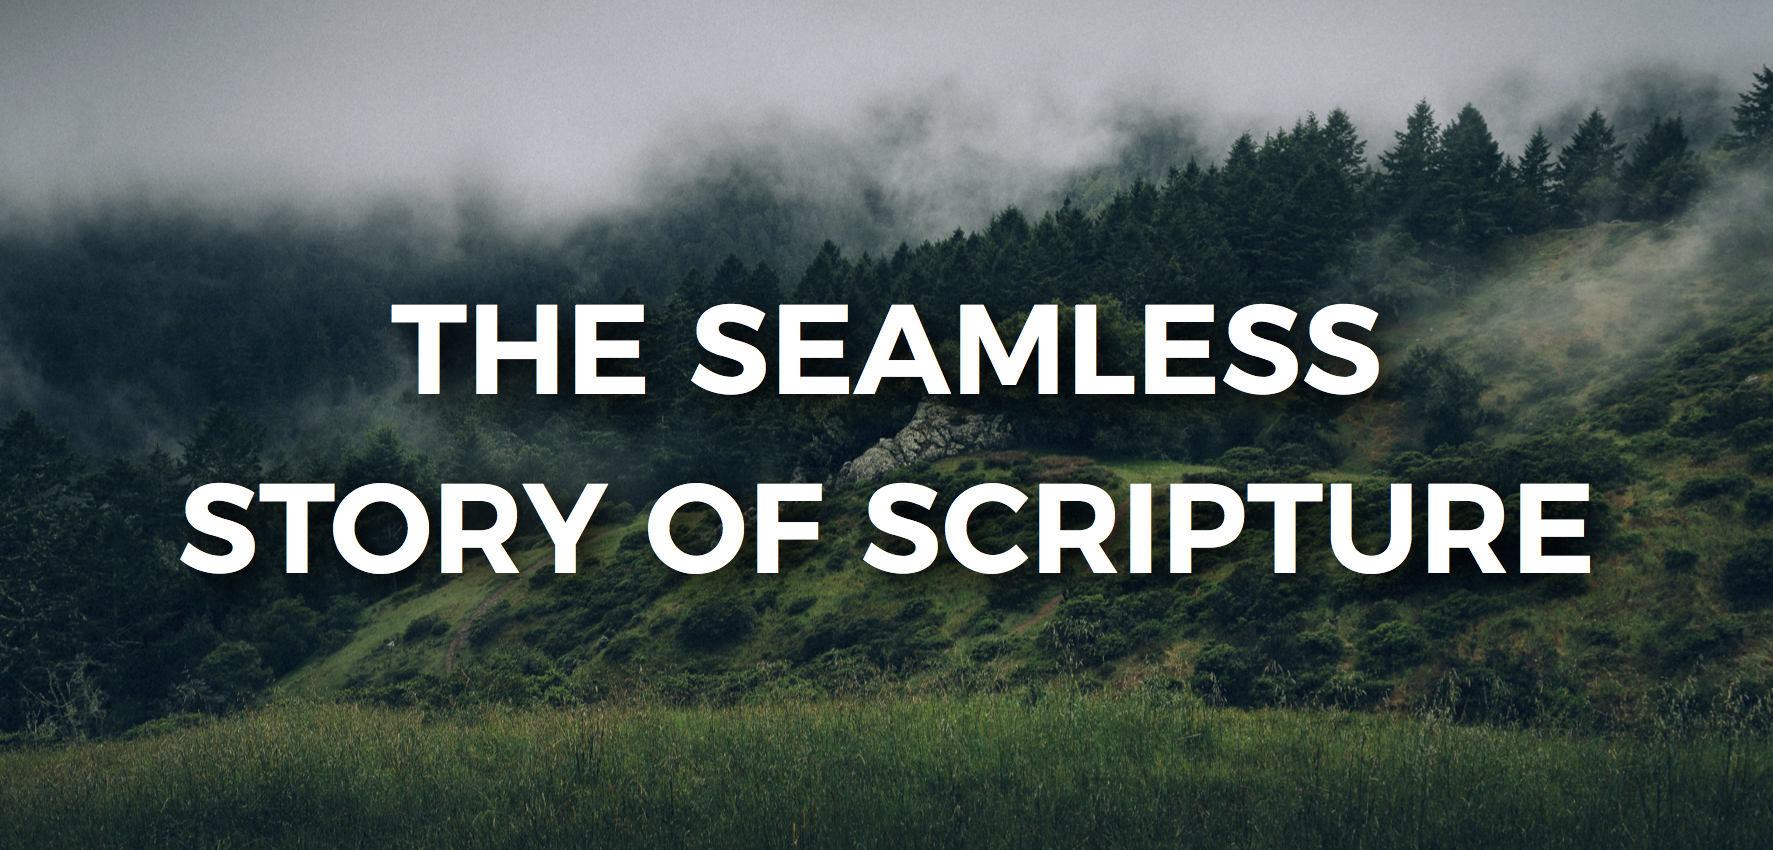 Seamless Story of Scripture